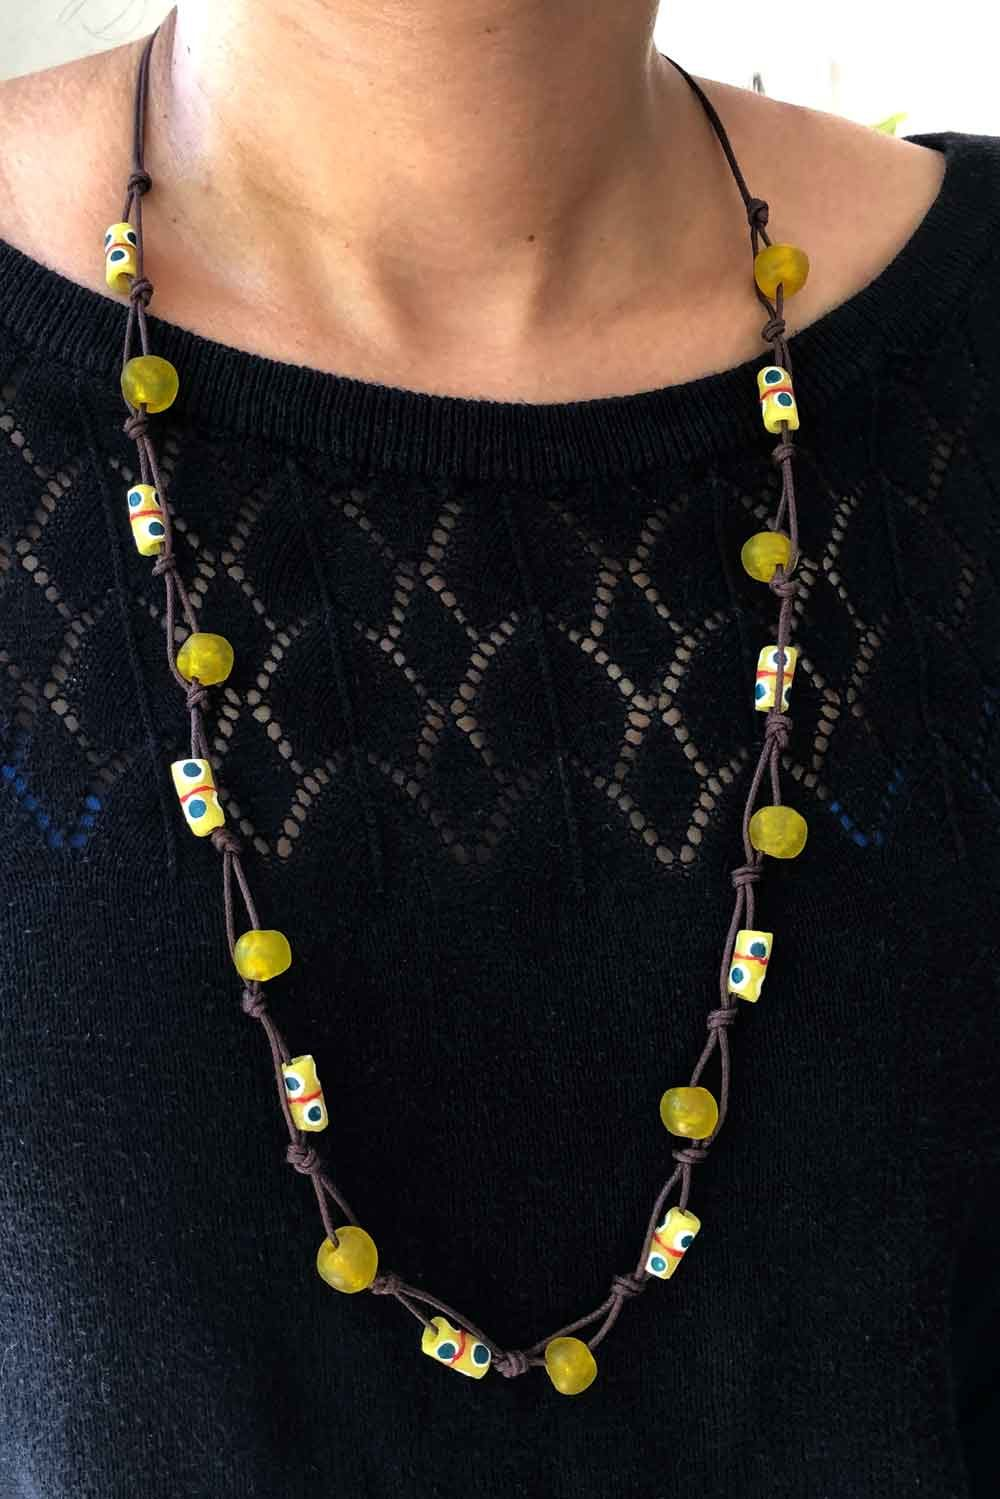 Yellow Jiona Knot Necklace Brown Cord SHIKHAZURI Modelled